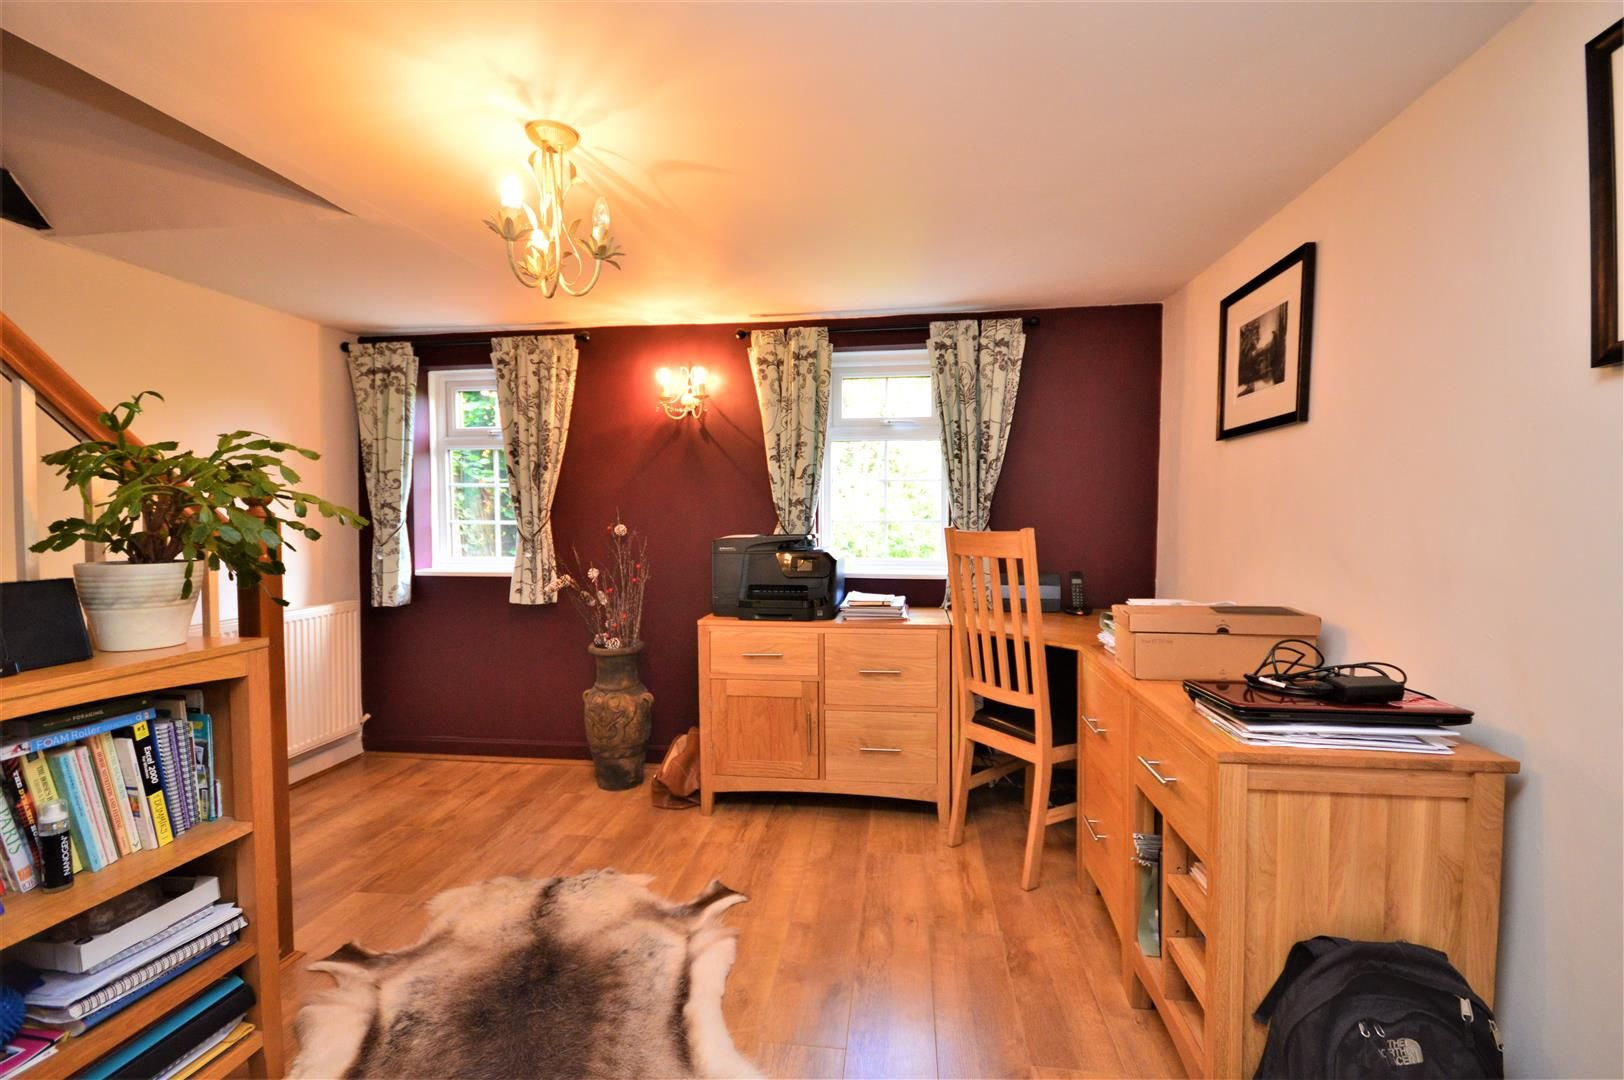 3 bed semi-detached for sale in Stretton Sugwas  - Property Image 8